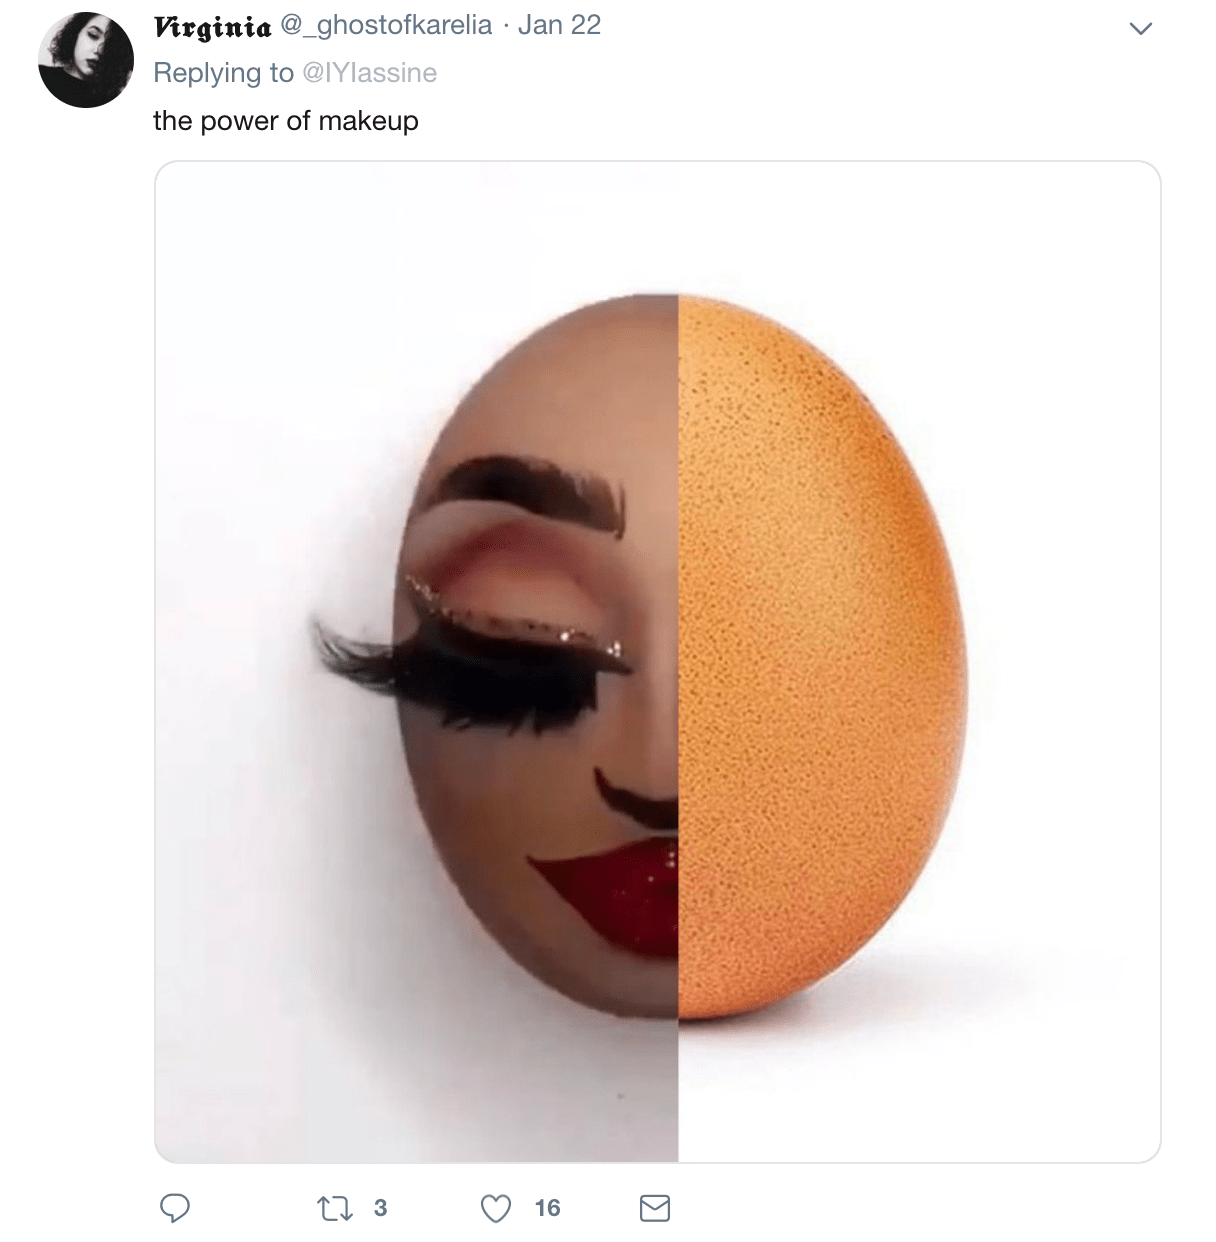 Teni Reacts To Funny Egg Meme About Her Photos Celebrities